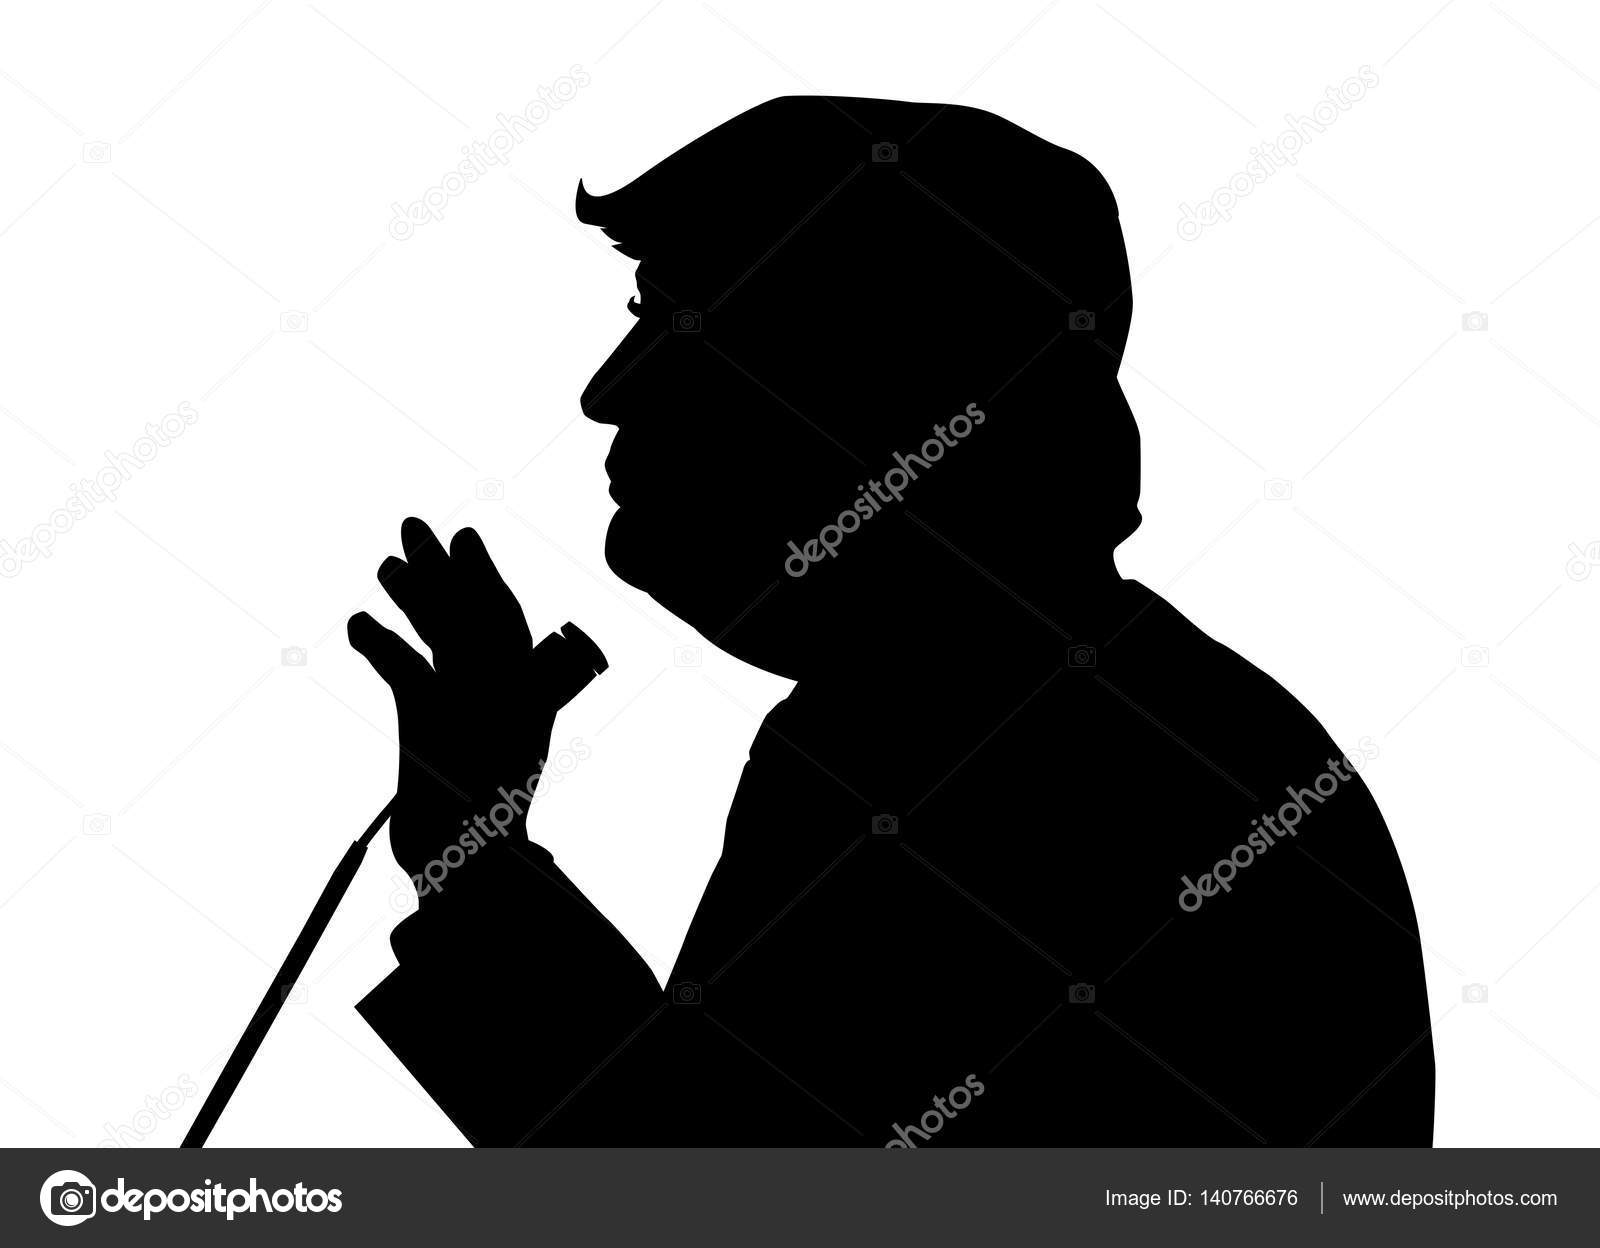 05, Feb, 2017: Donald Trump profile portrait silhouette on the white background. 45th US President Donald Trump with microphone speaking to the audience. — Stock Vector